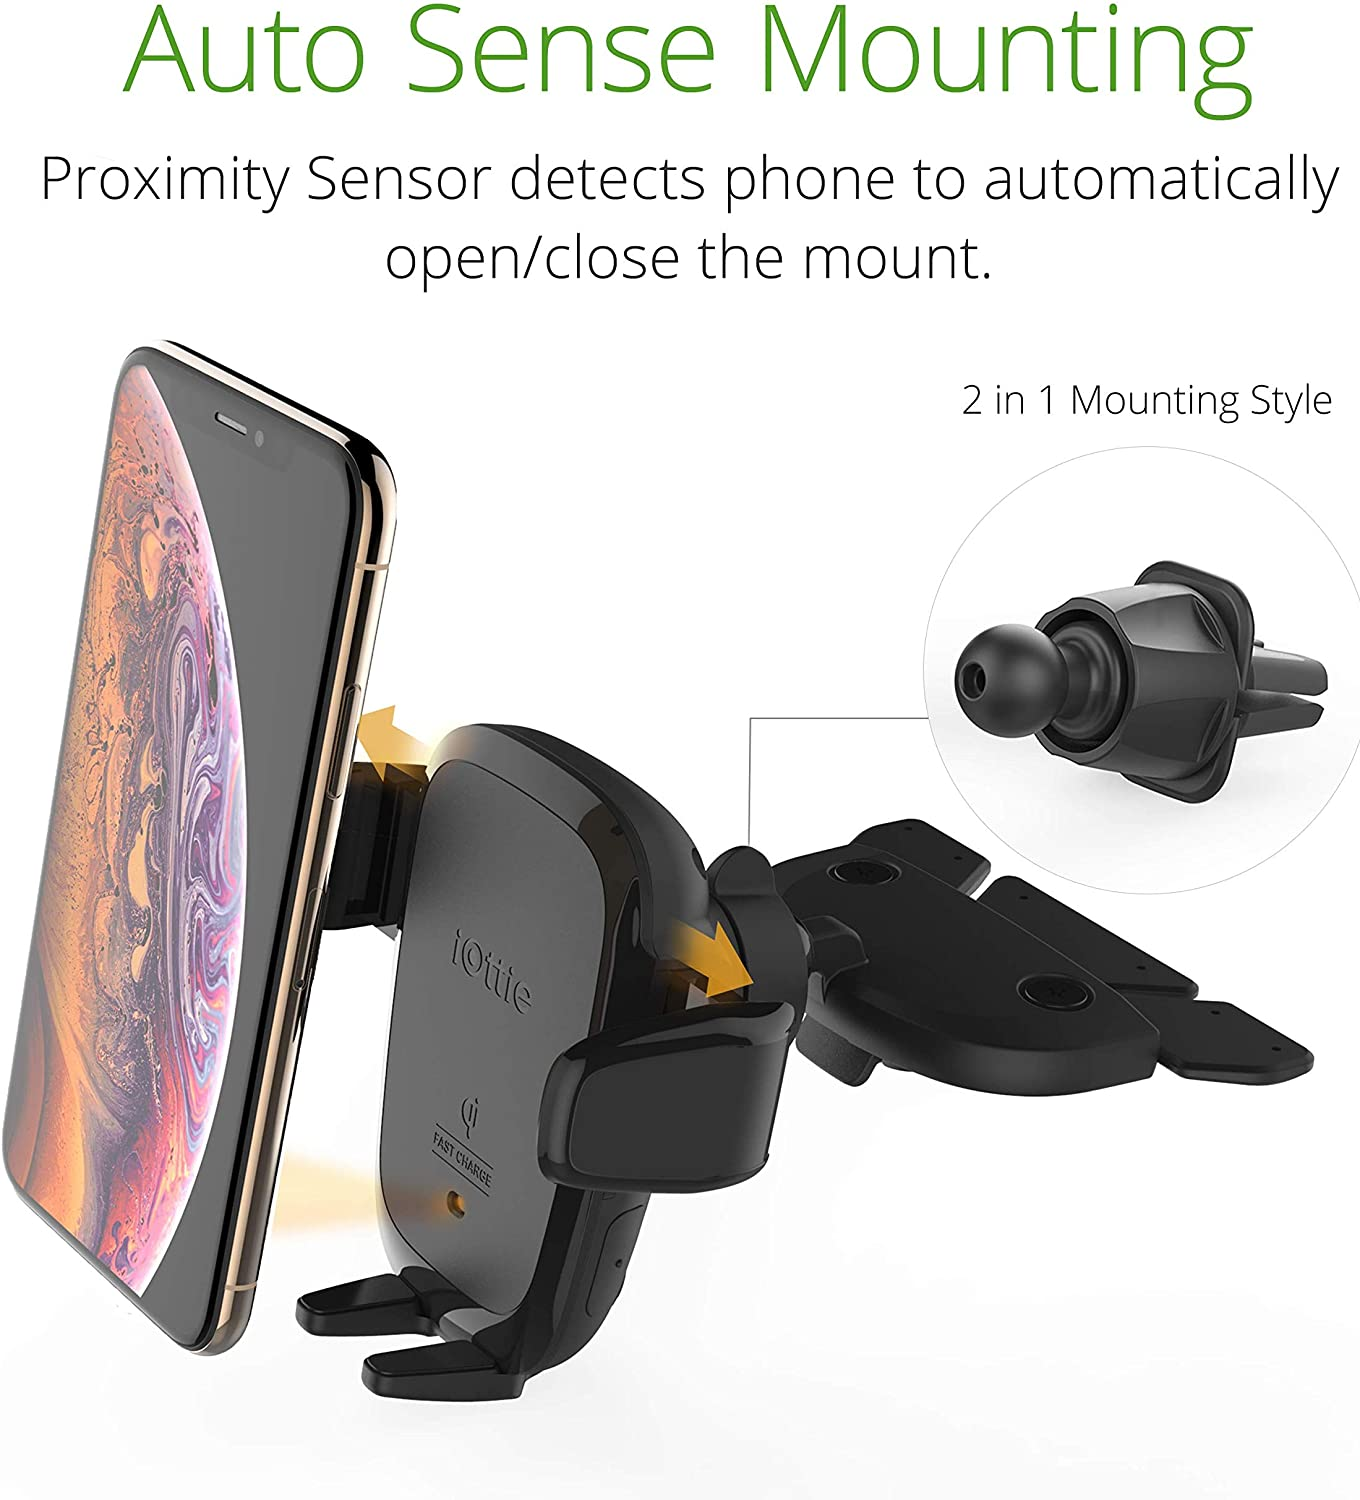 Smartphones Huawei Samsung Galaxy LG iOttie Wireless Car Charger Auto Sense Qi Charging Automatic Clamping Dashboard Phone Mount for iPhone